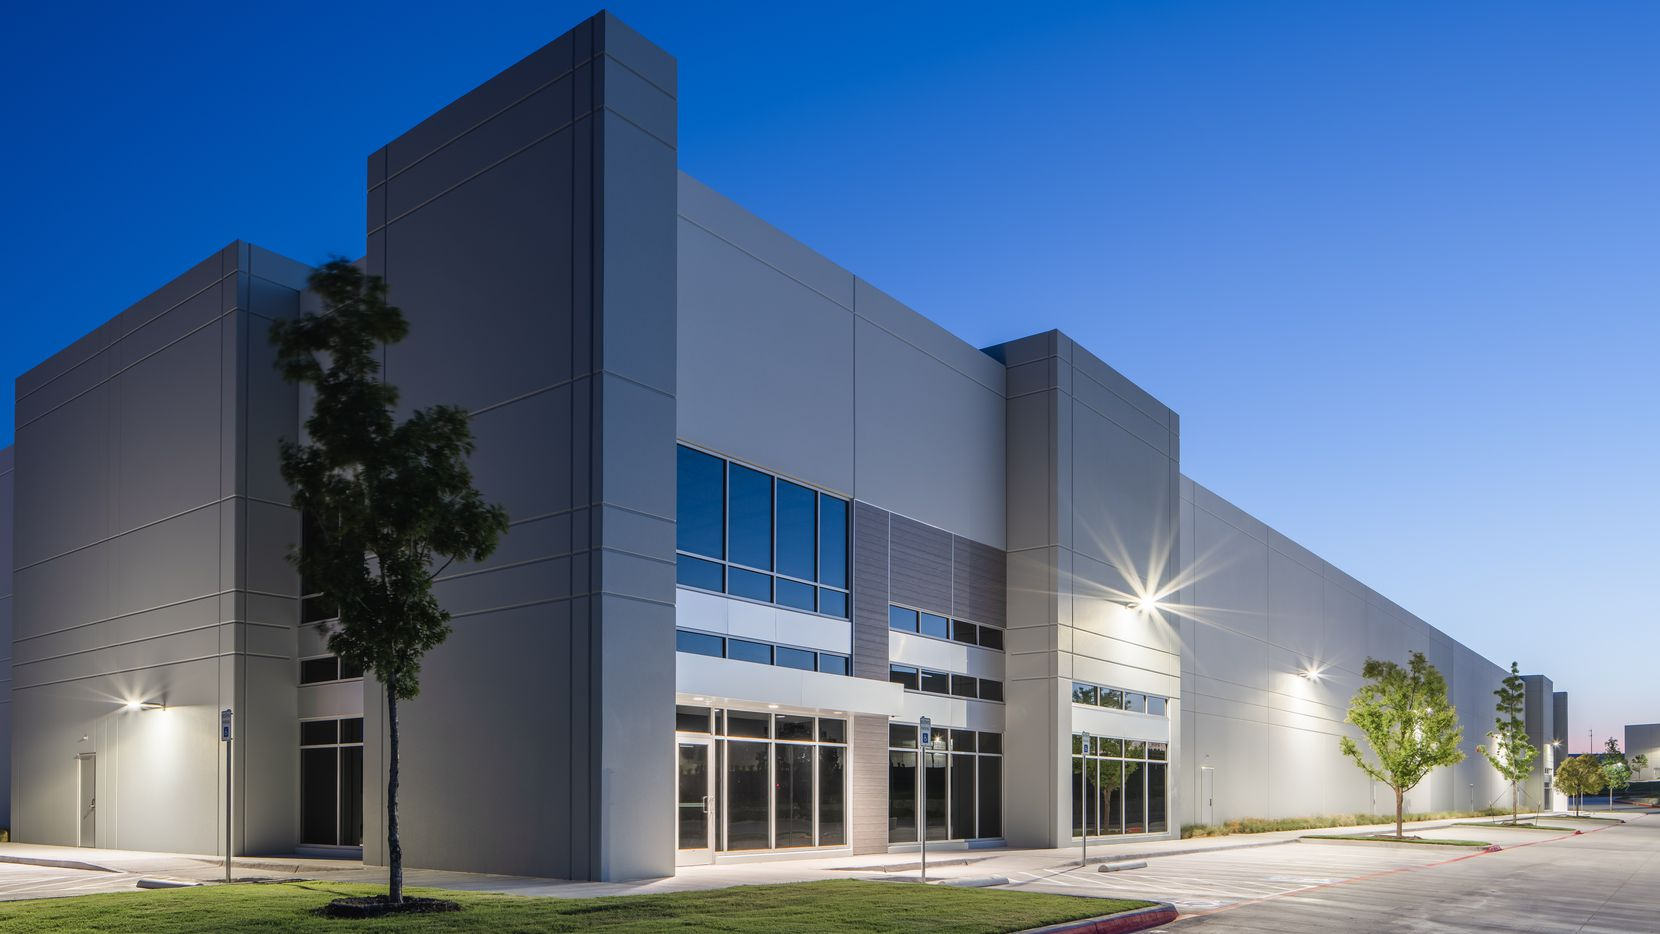 Mygrant Glass leased 93,079 square feet of industrial space in Parc NorthEast in Richardson.